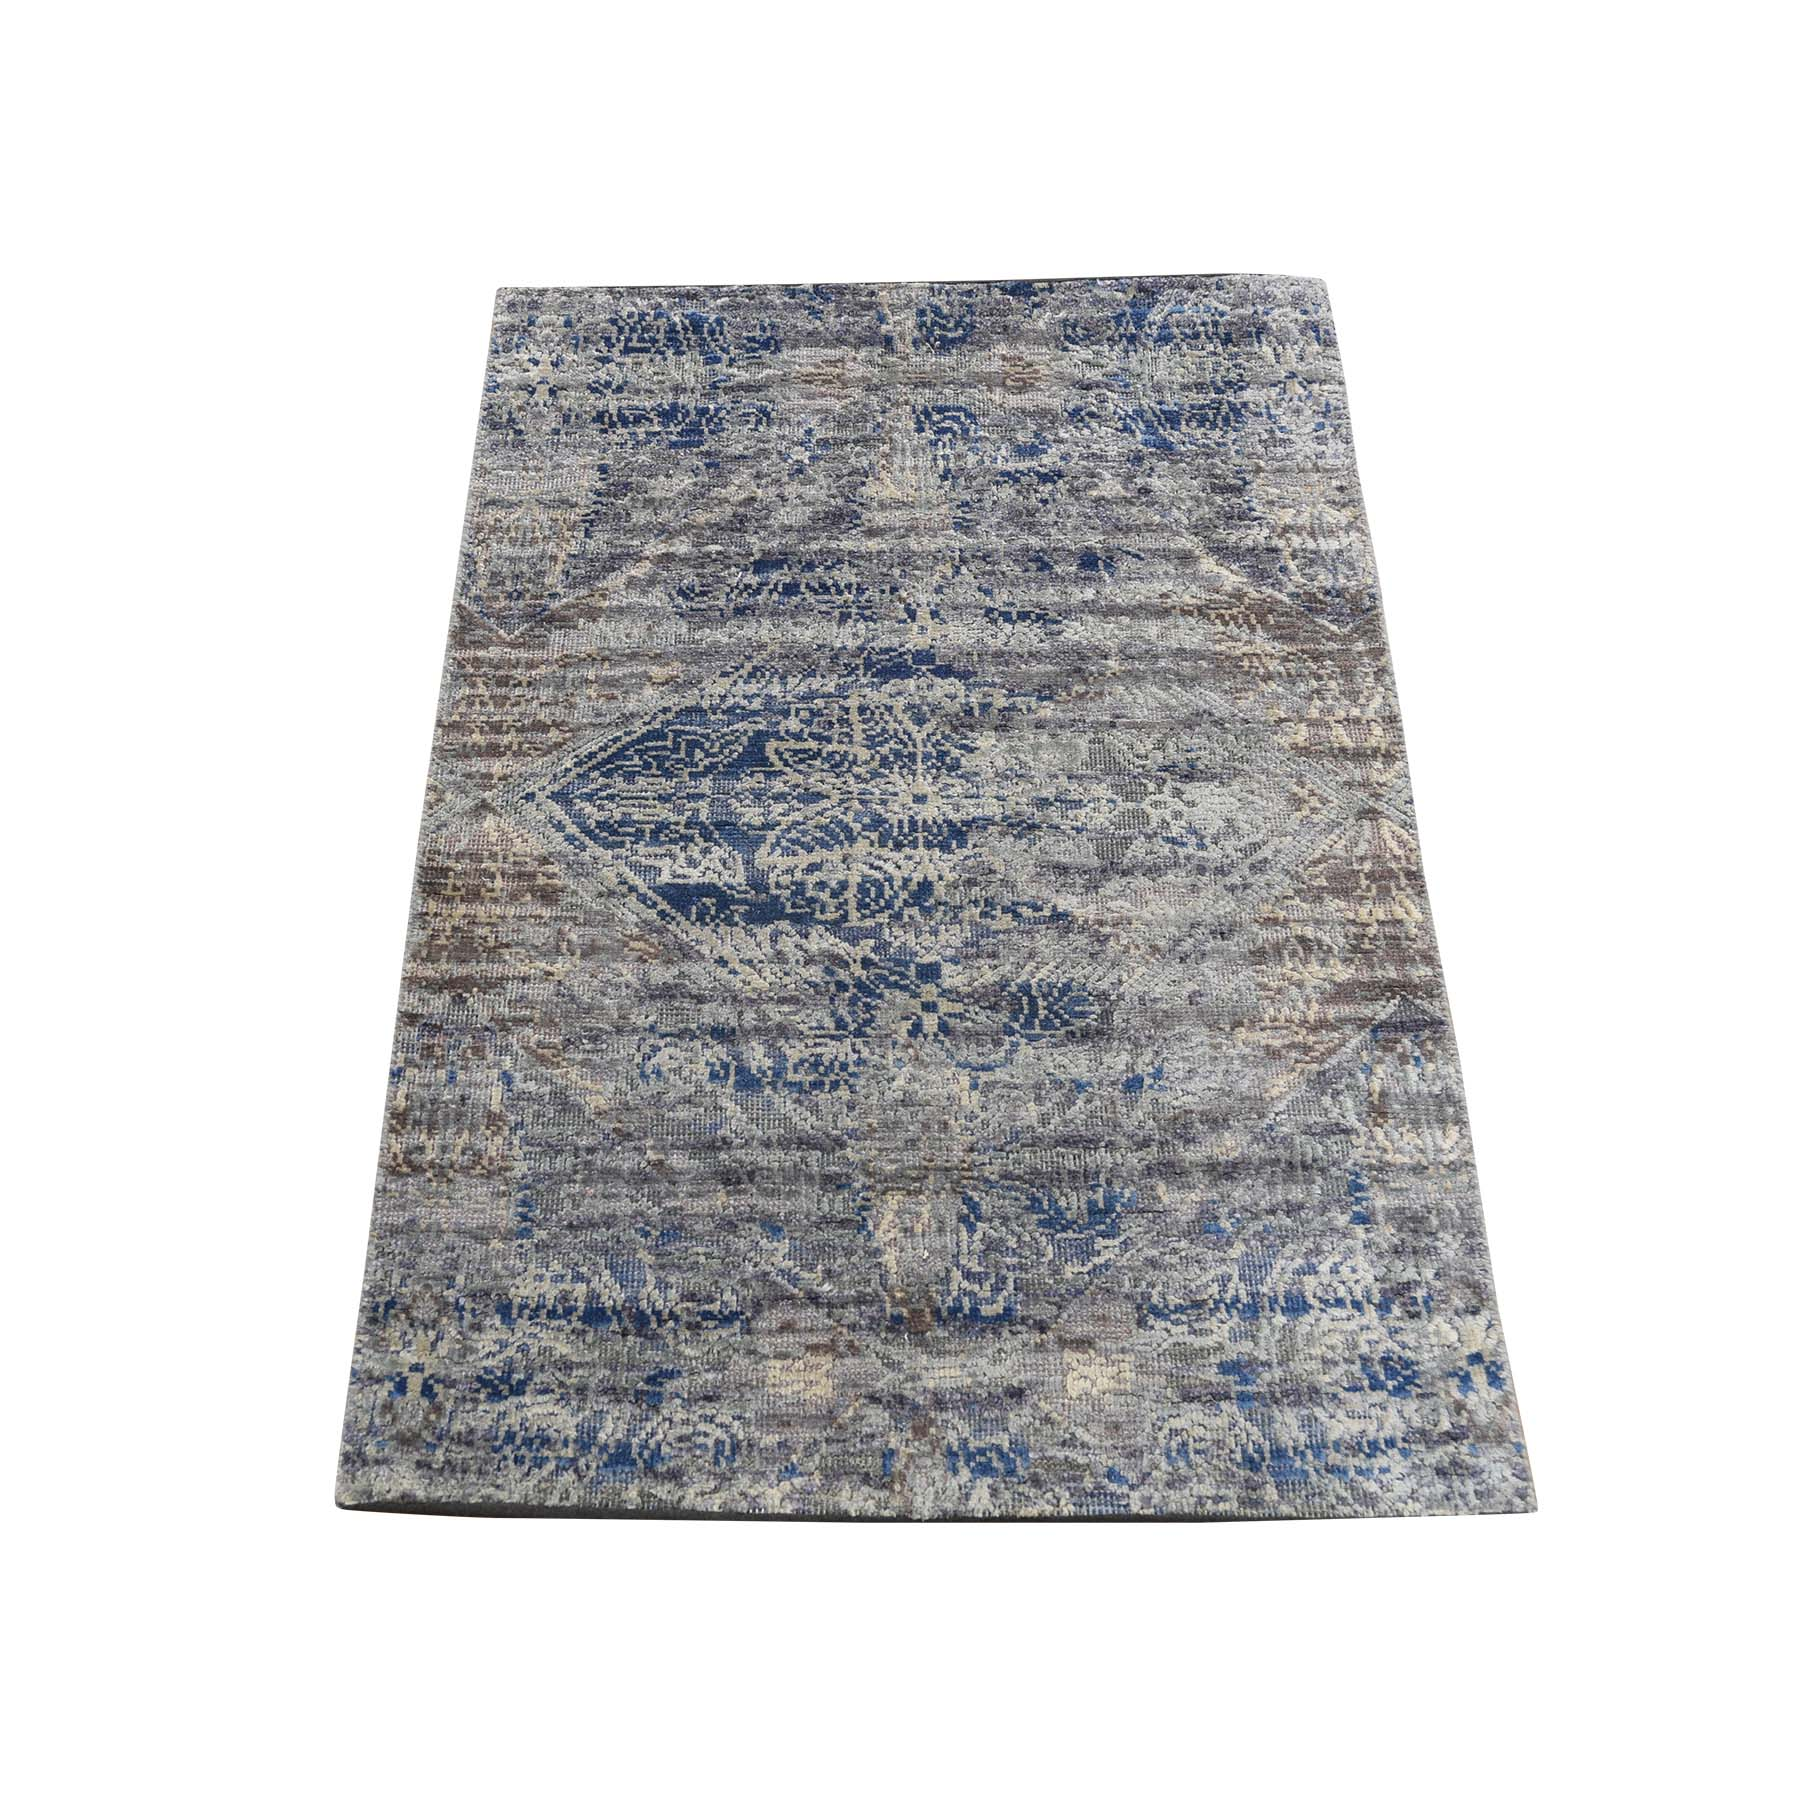 "2'x3'1"" ERASED ROSSETS,Silk With Textured Wool Denim BluE Hand-Knotted Oriental Sample Rug"